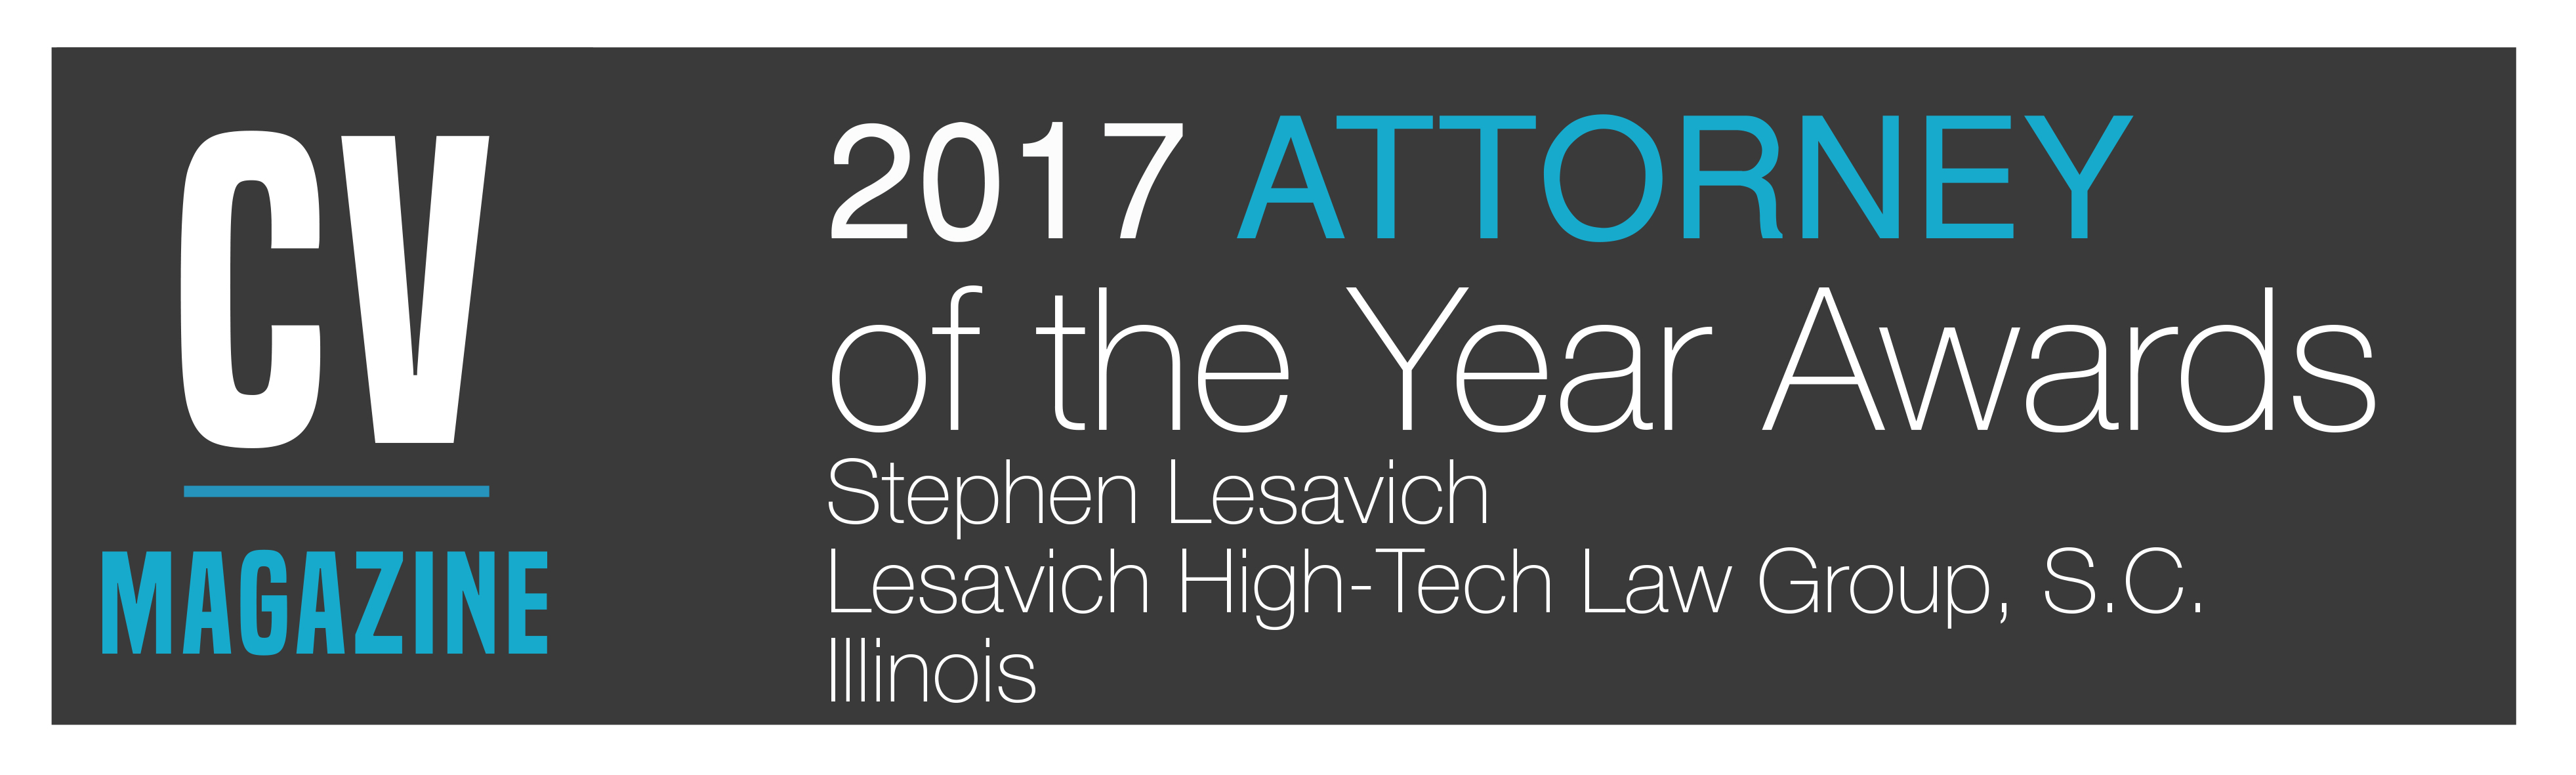 Lesavich High-Tech Law Group S.C.-Attorney of the Year Awards (